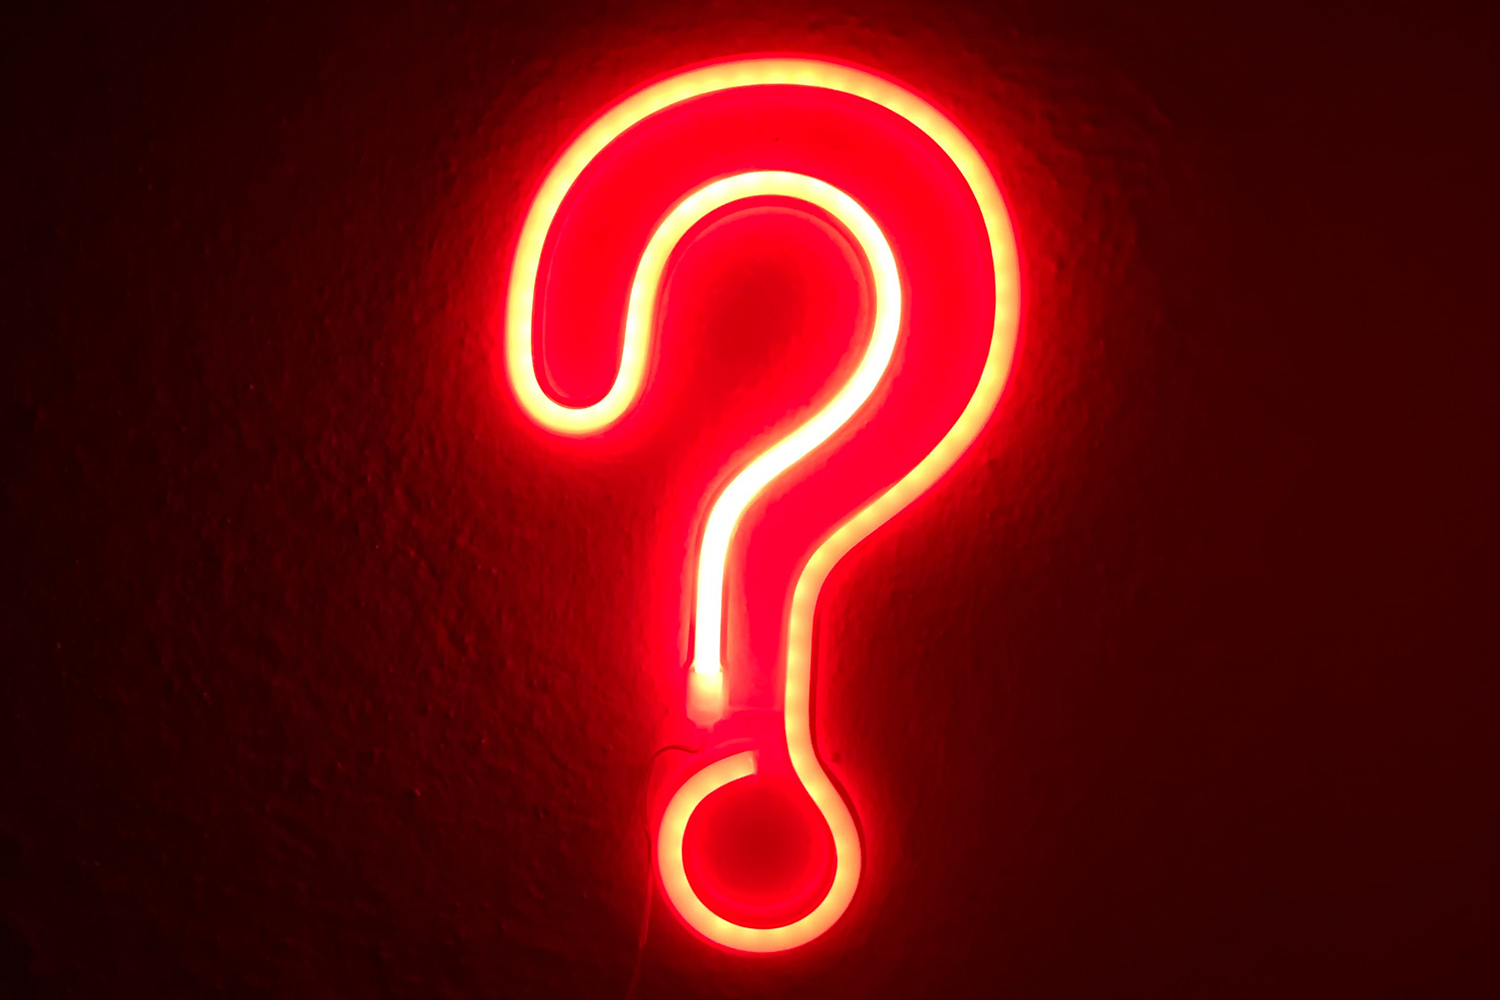 Neon light in shape of a question mark. Photo by Simone Secci on Unsplash